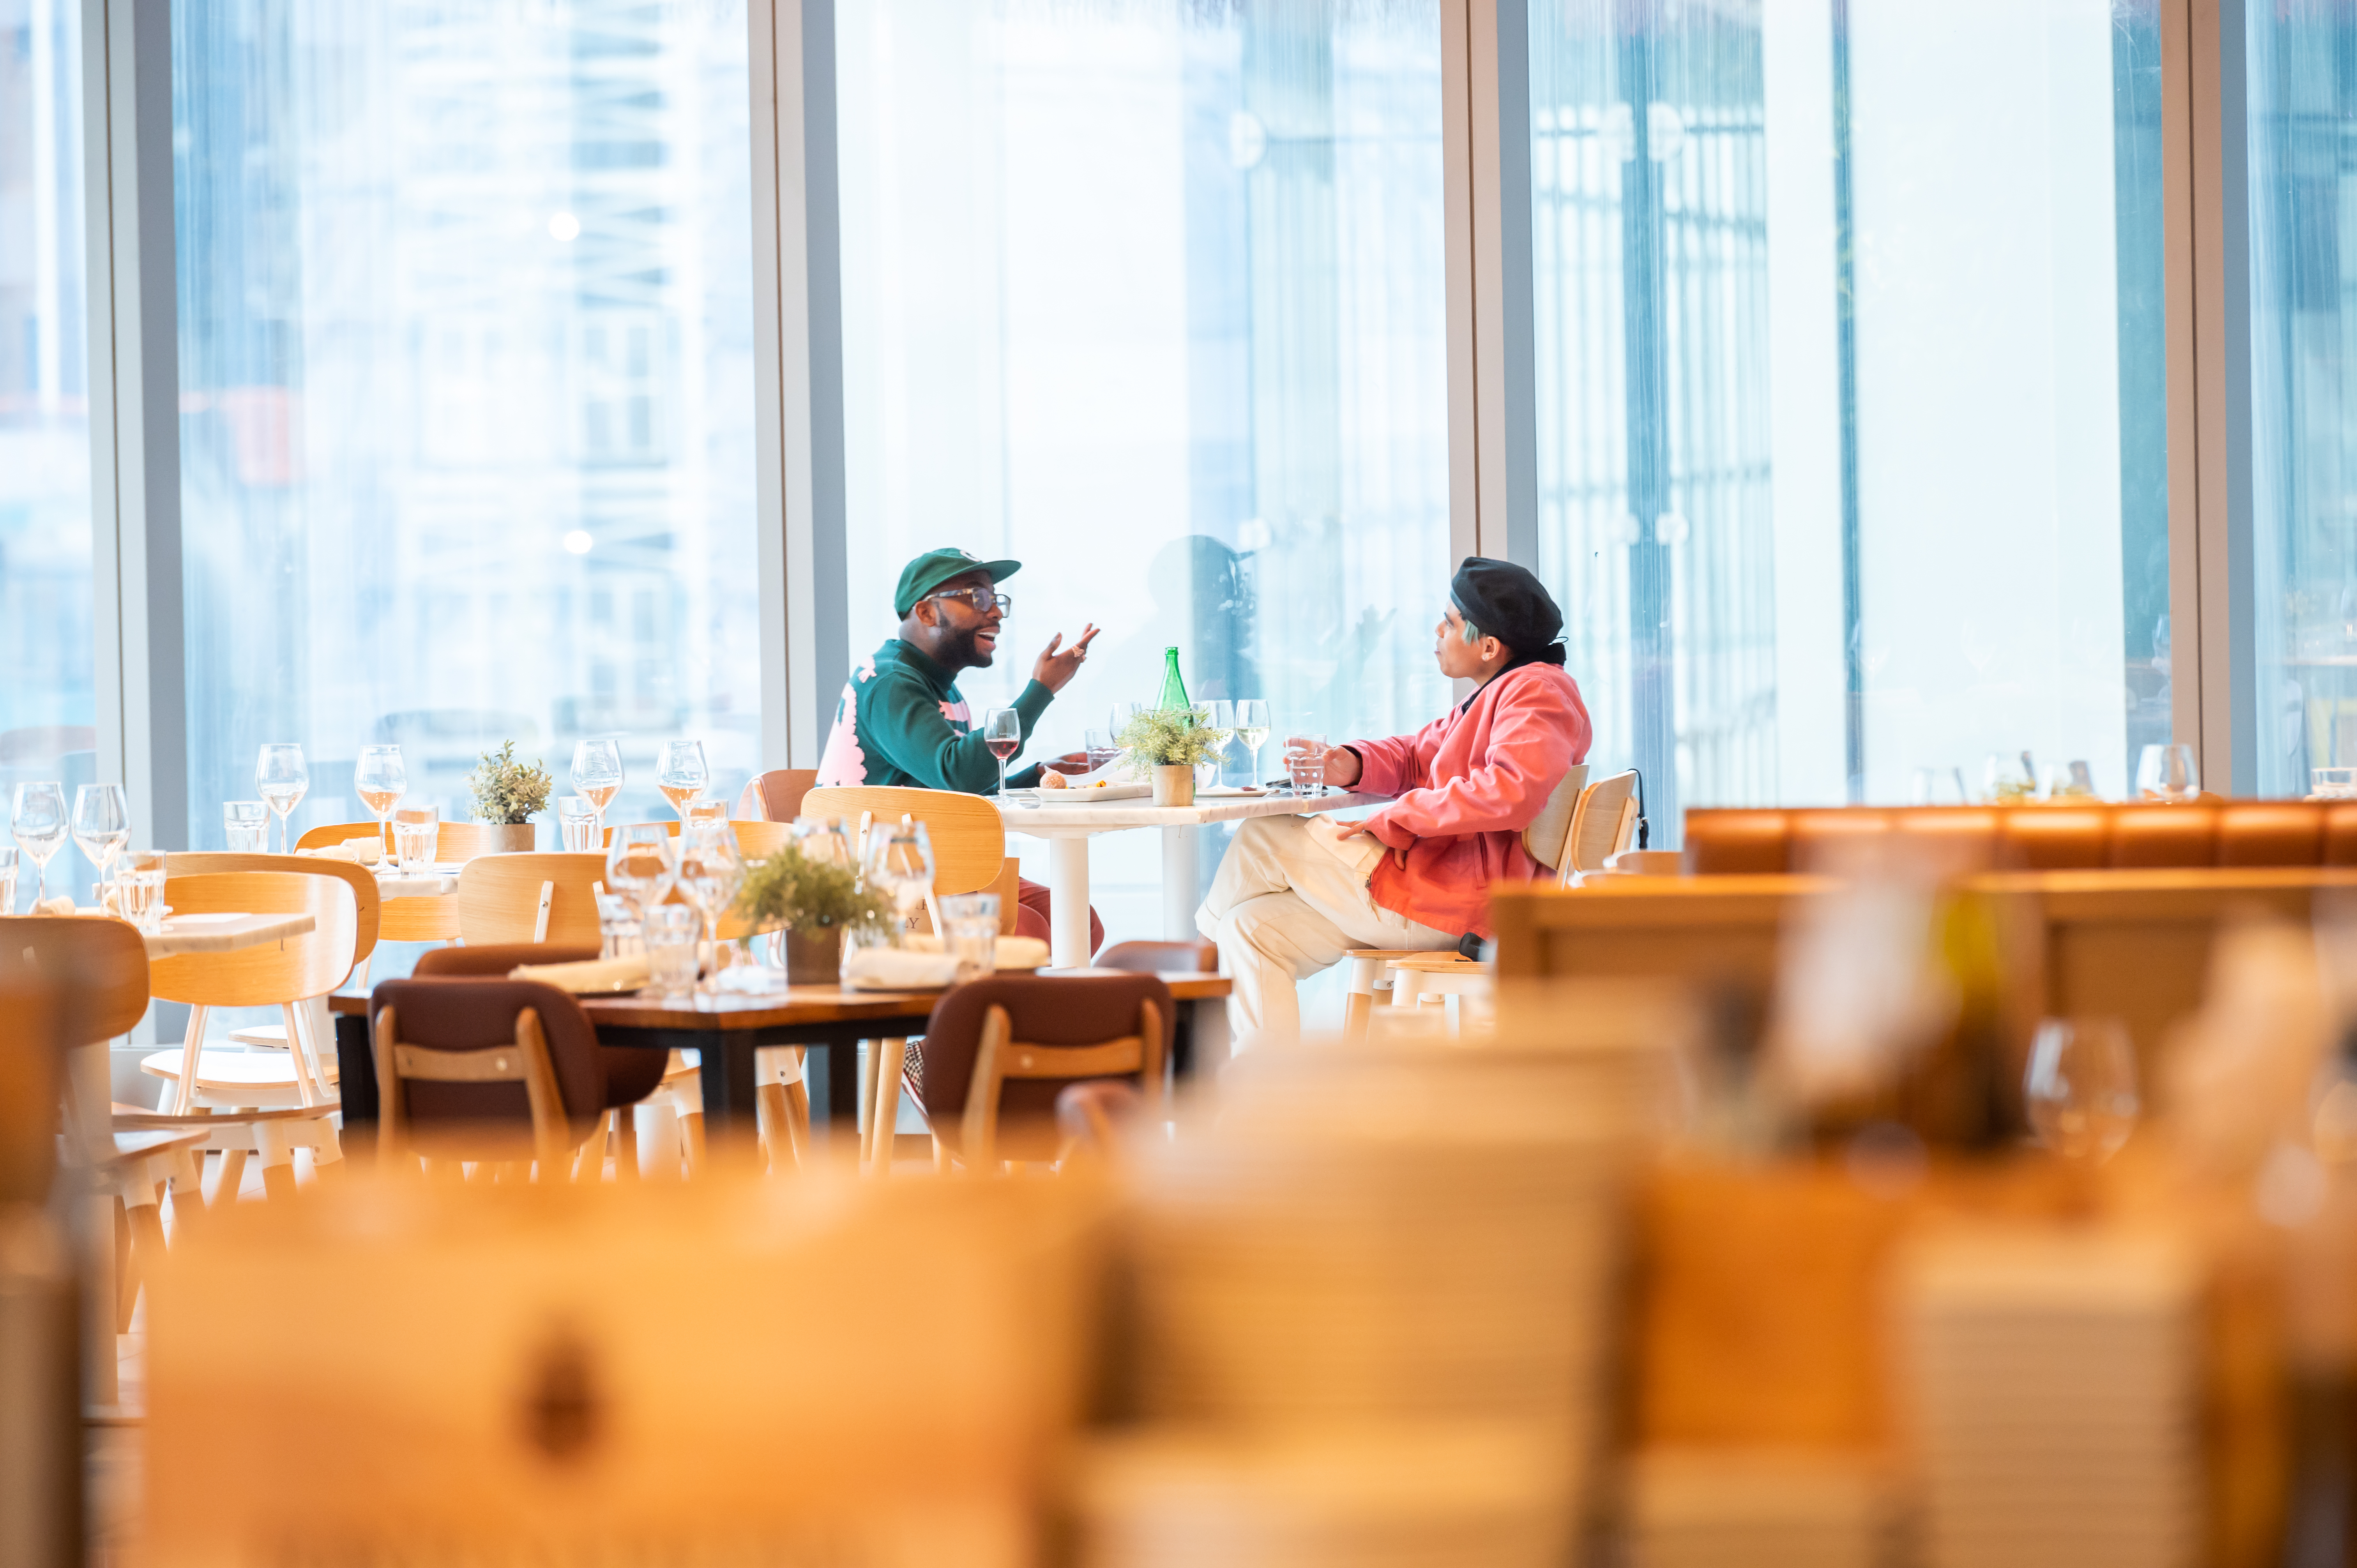 Two people eat in a dining room full of empty chairs and tables.